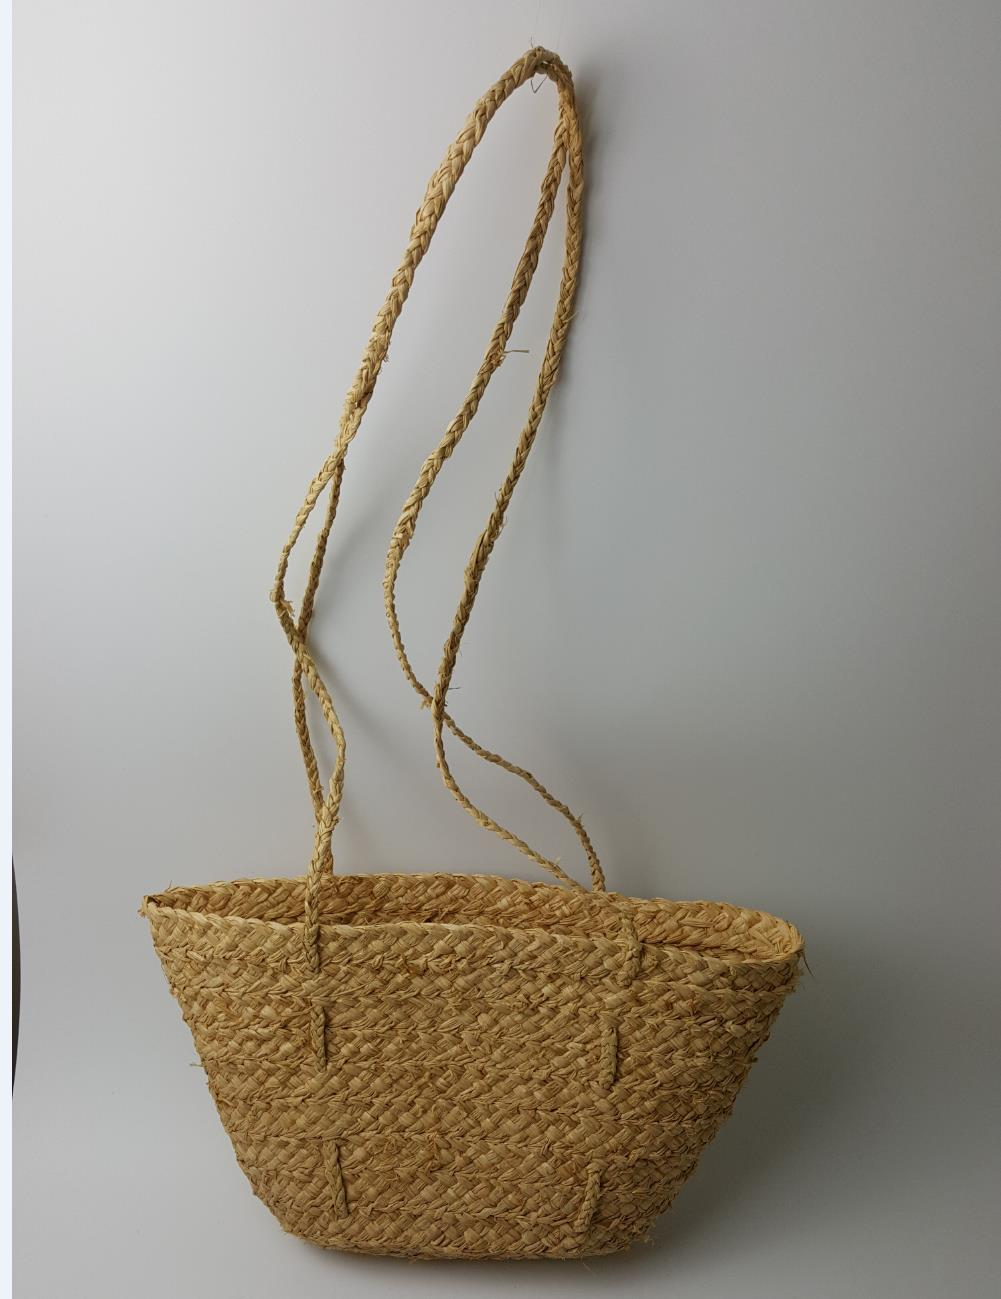 34*21cm Natural RAFFIA grass Countryside rural style very light and simple design Straw bag  Beach  Travel Vacation bag A2951~1